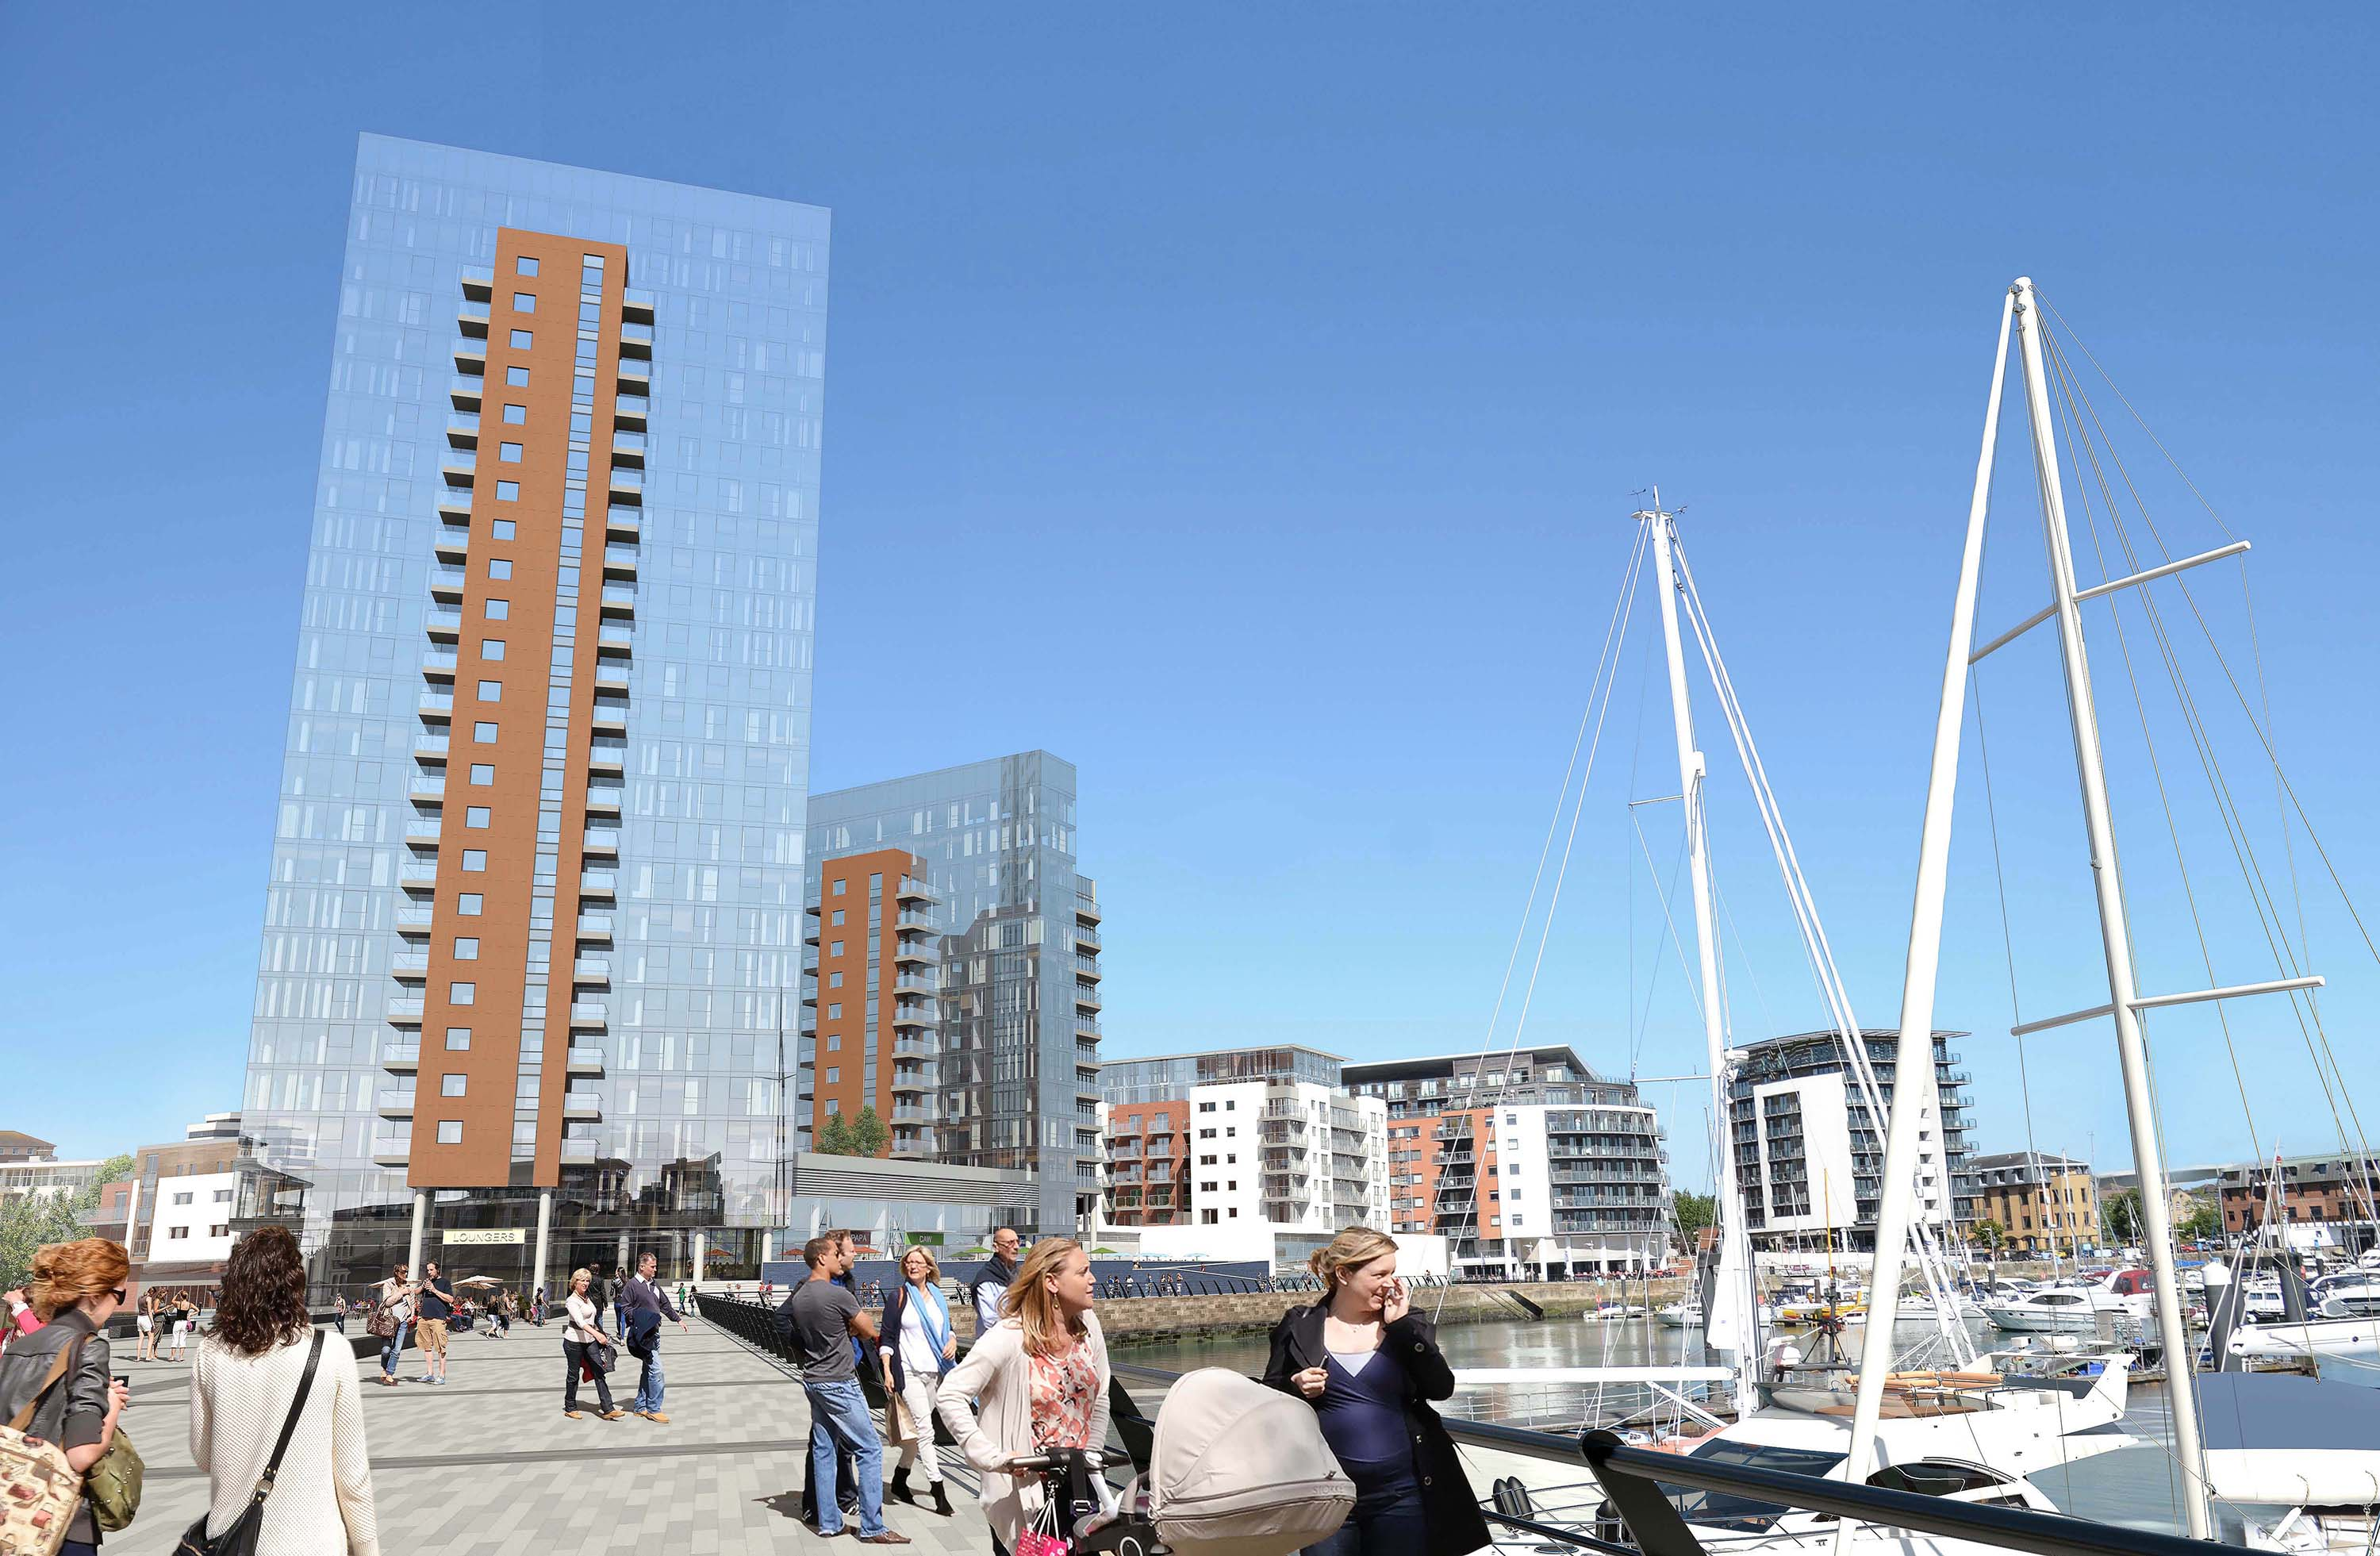 3D marketing visual for Admiral's Quay Southampton